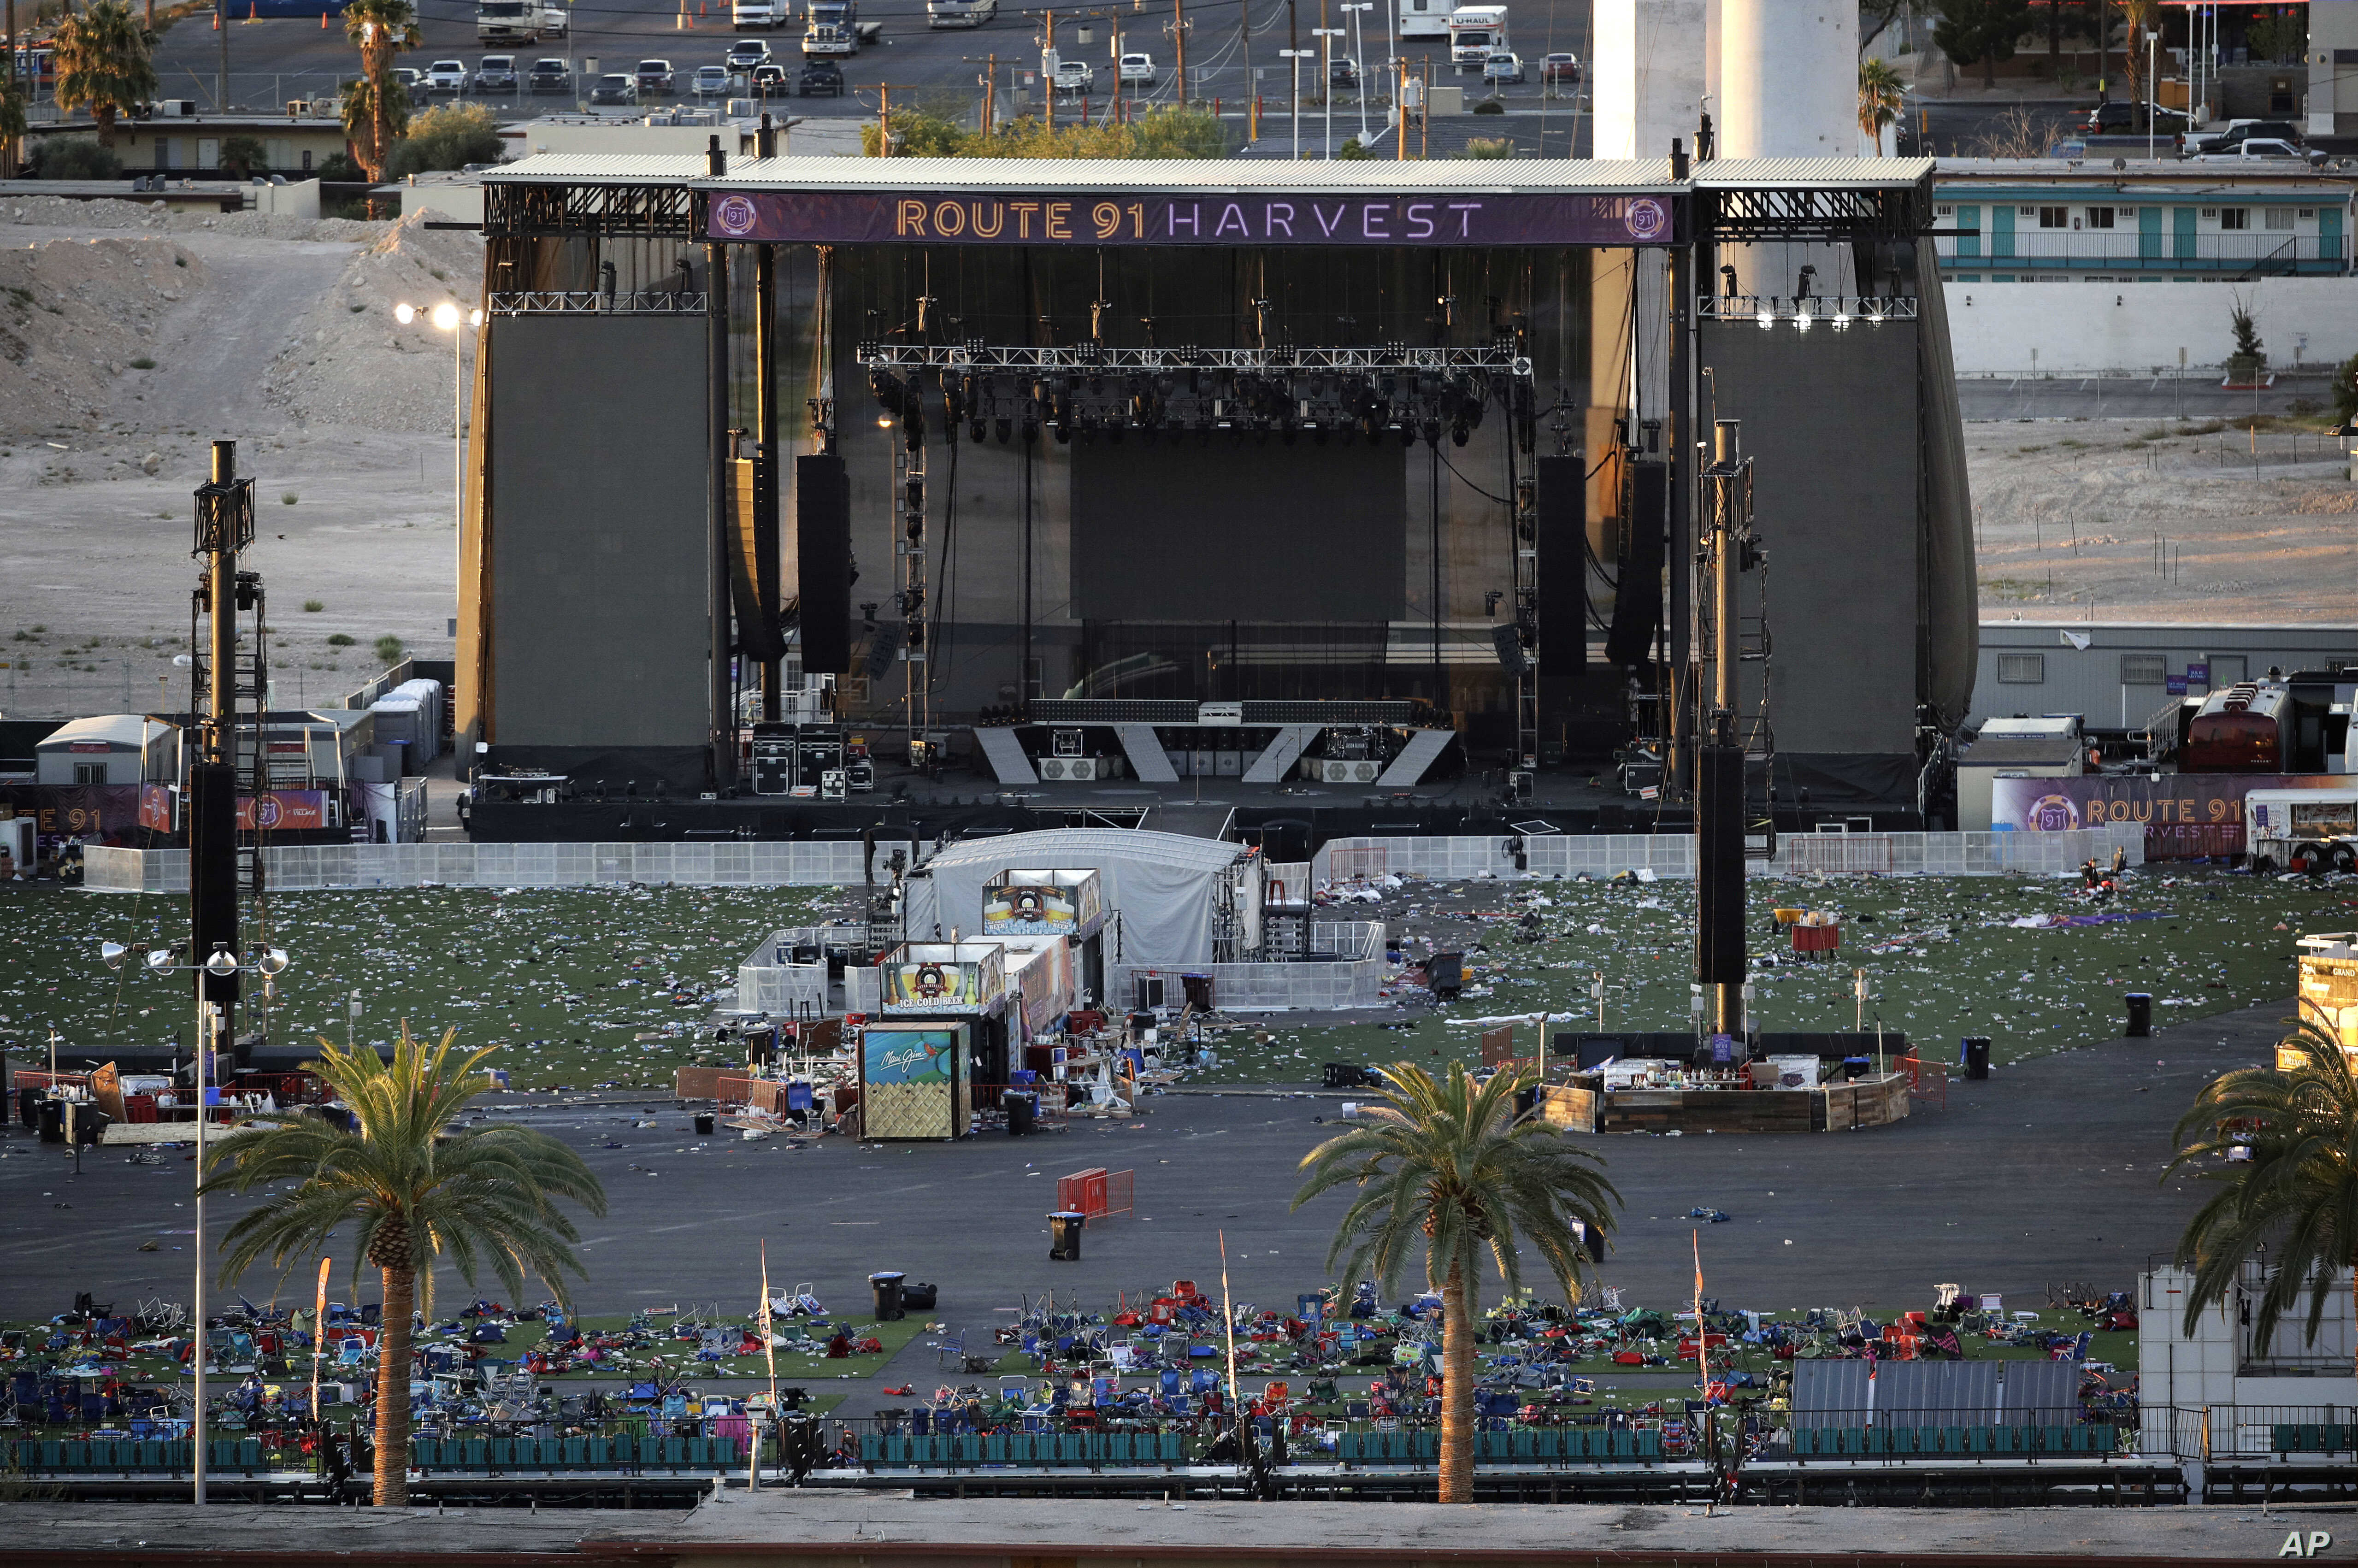 Debris litters the festival grounds across the street from the Mandalay Bay Resort and Casino, Oct. 3, 2017, in Las Vegas. Authorities said Stephen Craig Paddock, perched in the resort's hotel, used a cache of weapons to kill dozens and injure hundre...